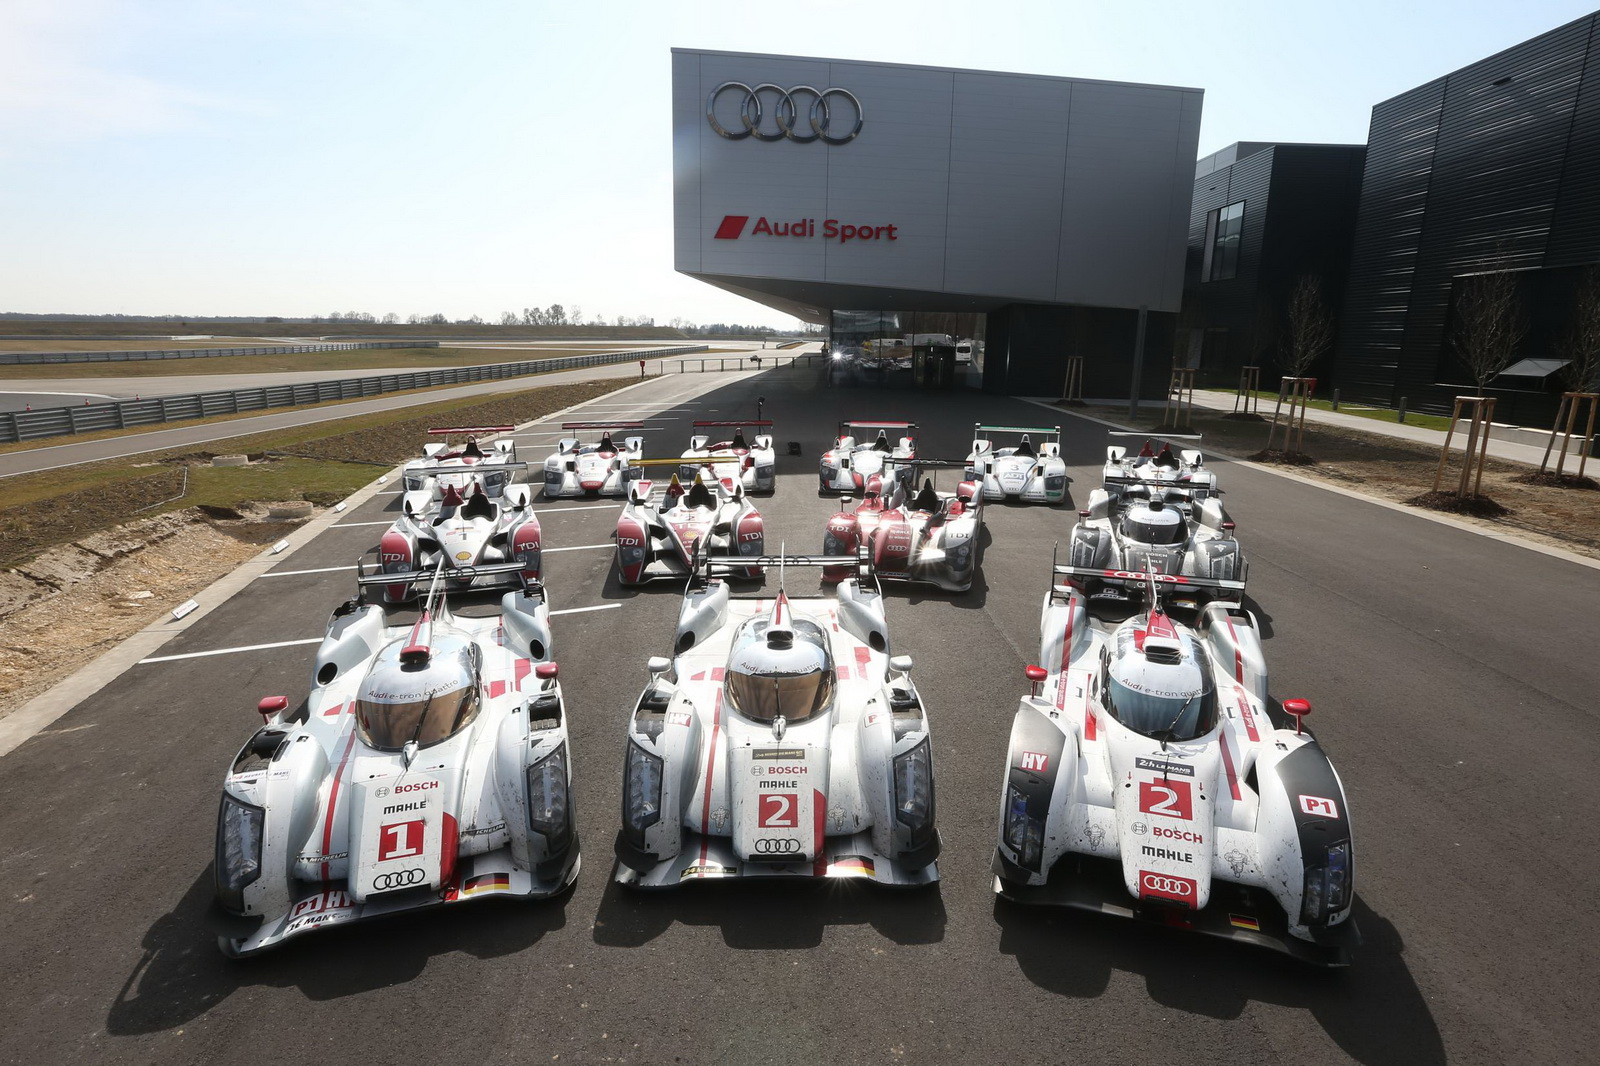 Ahead Of The 2017 Edition 24 Hours Le Mans Commencing On 13th June Audi Decided To Organise A Very Special Gathering All Its